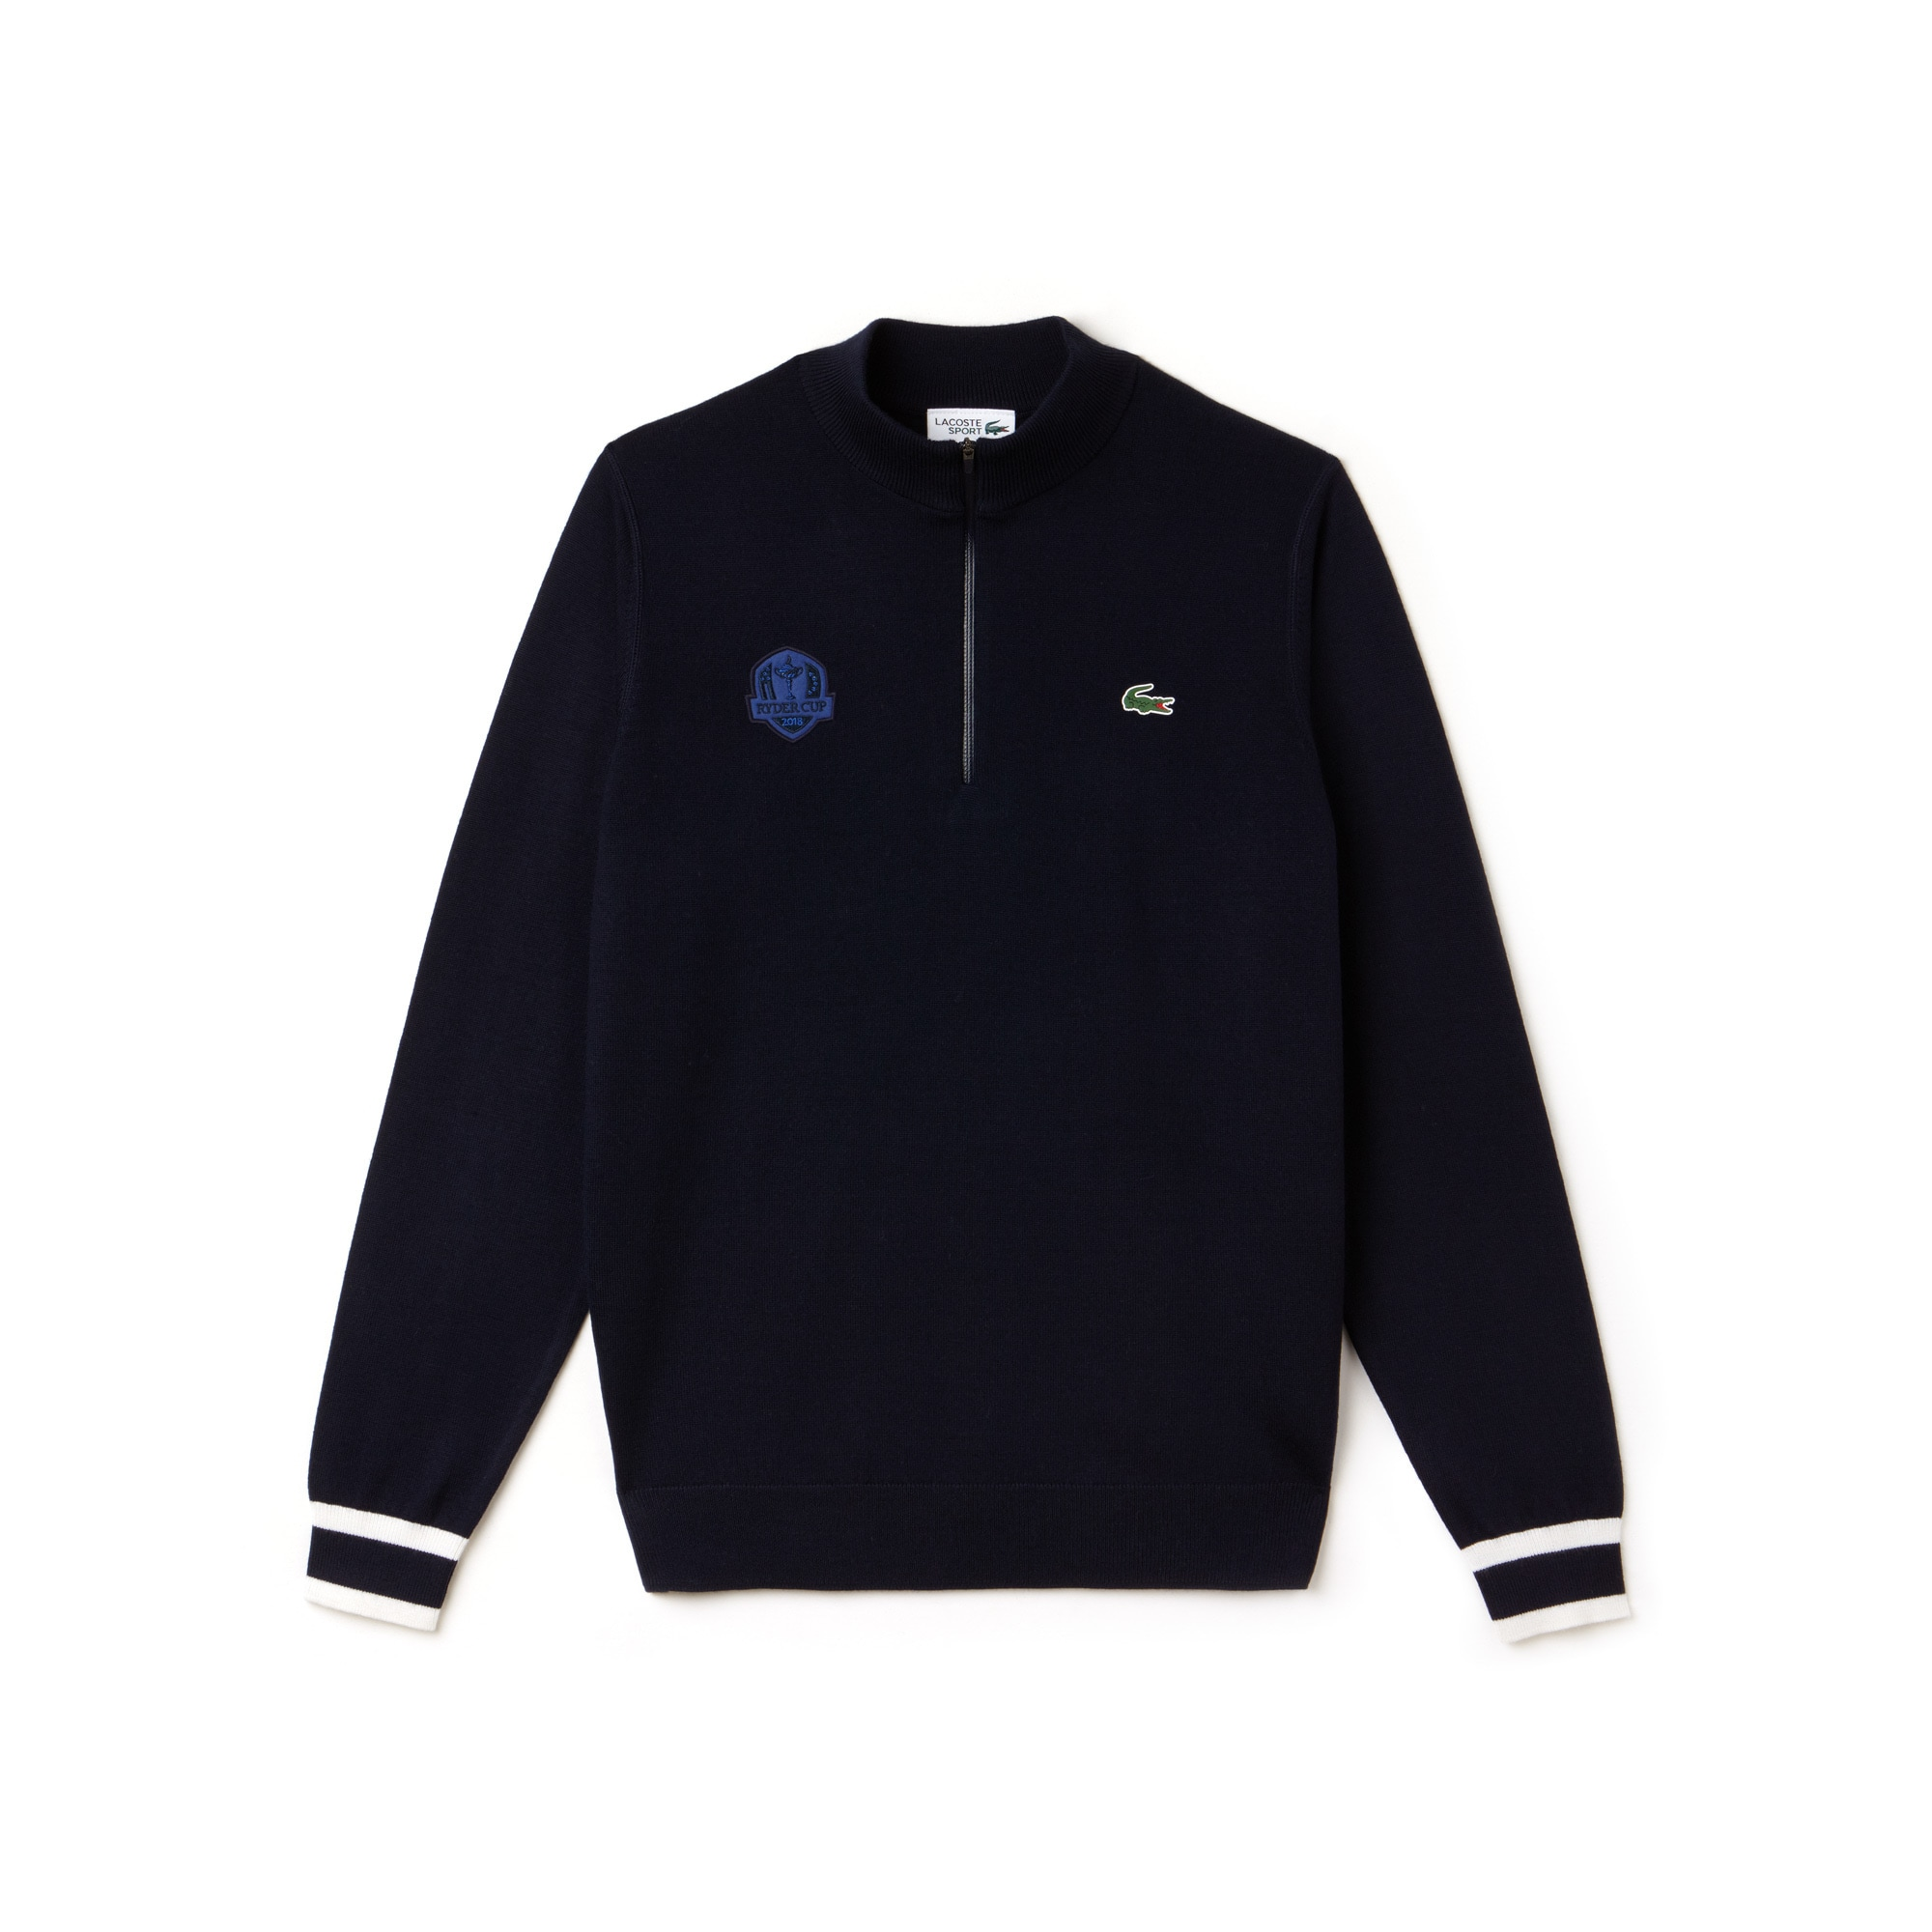 Men's Lacoste SPORT Ryder Cup Edition Zip Neck Jersey Golf Sweater